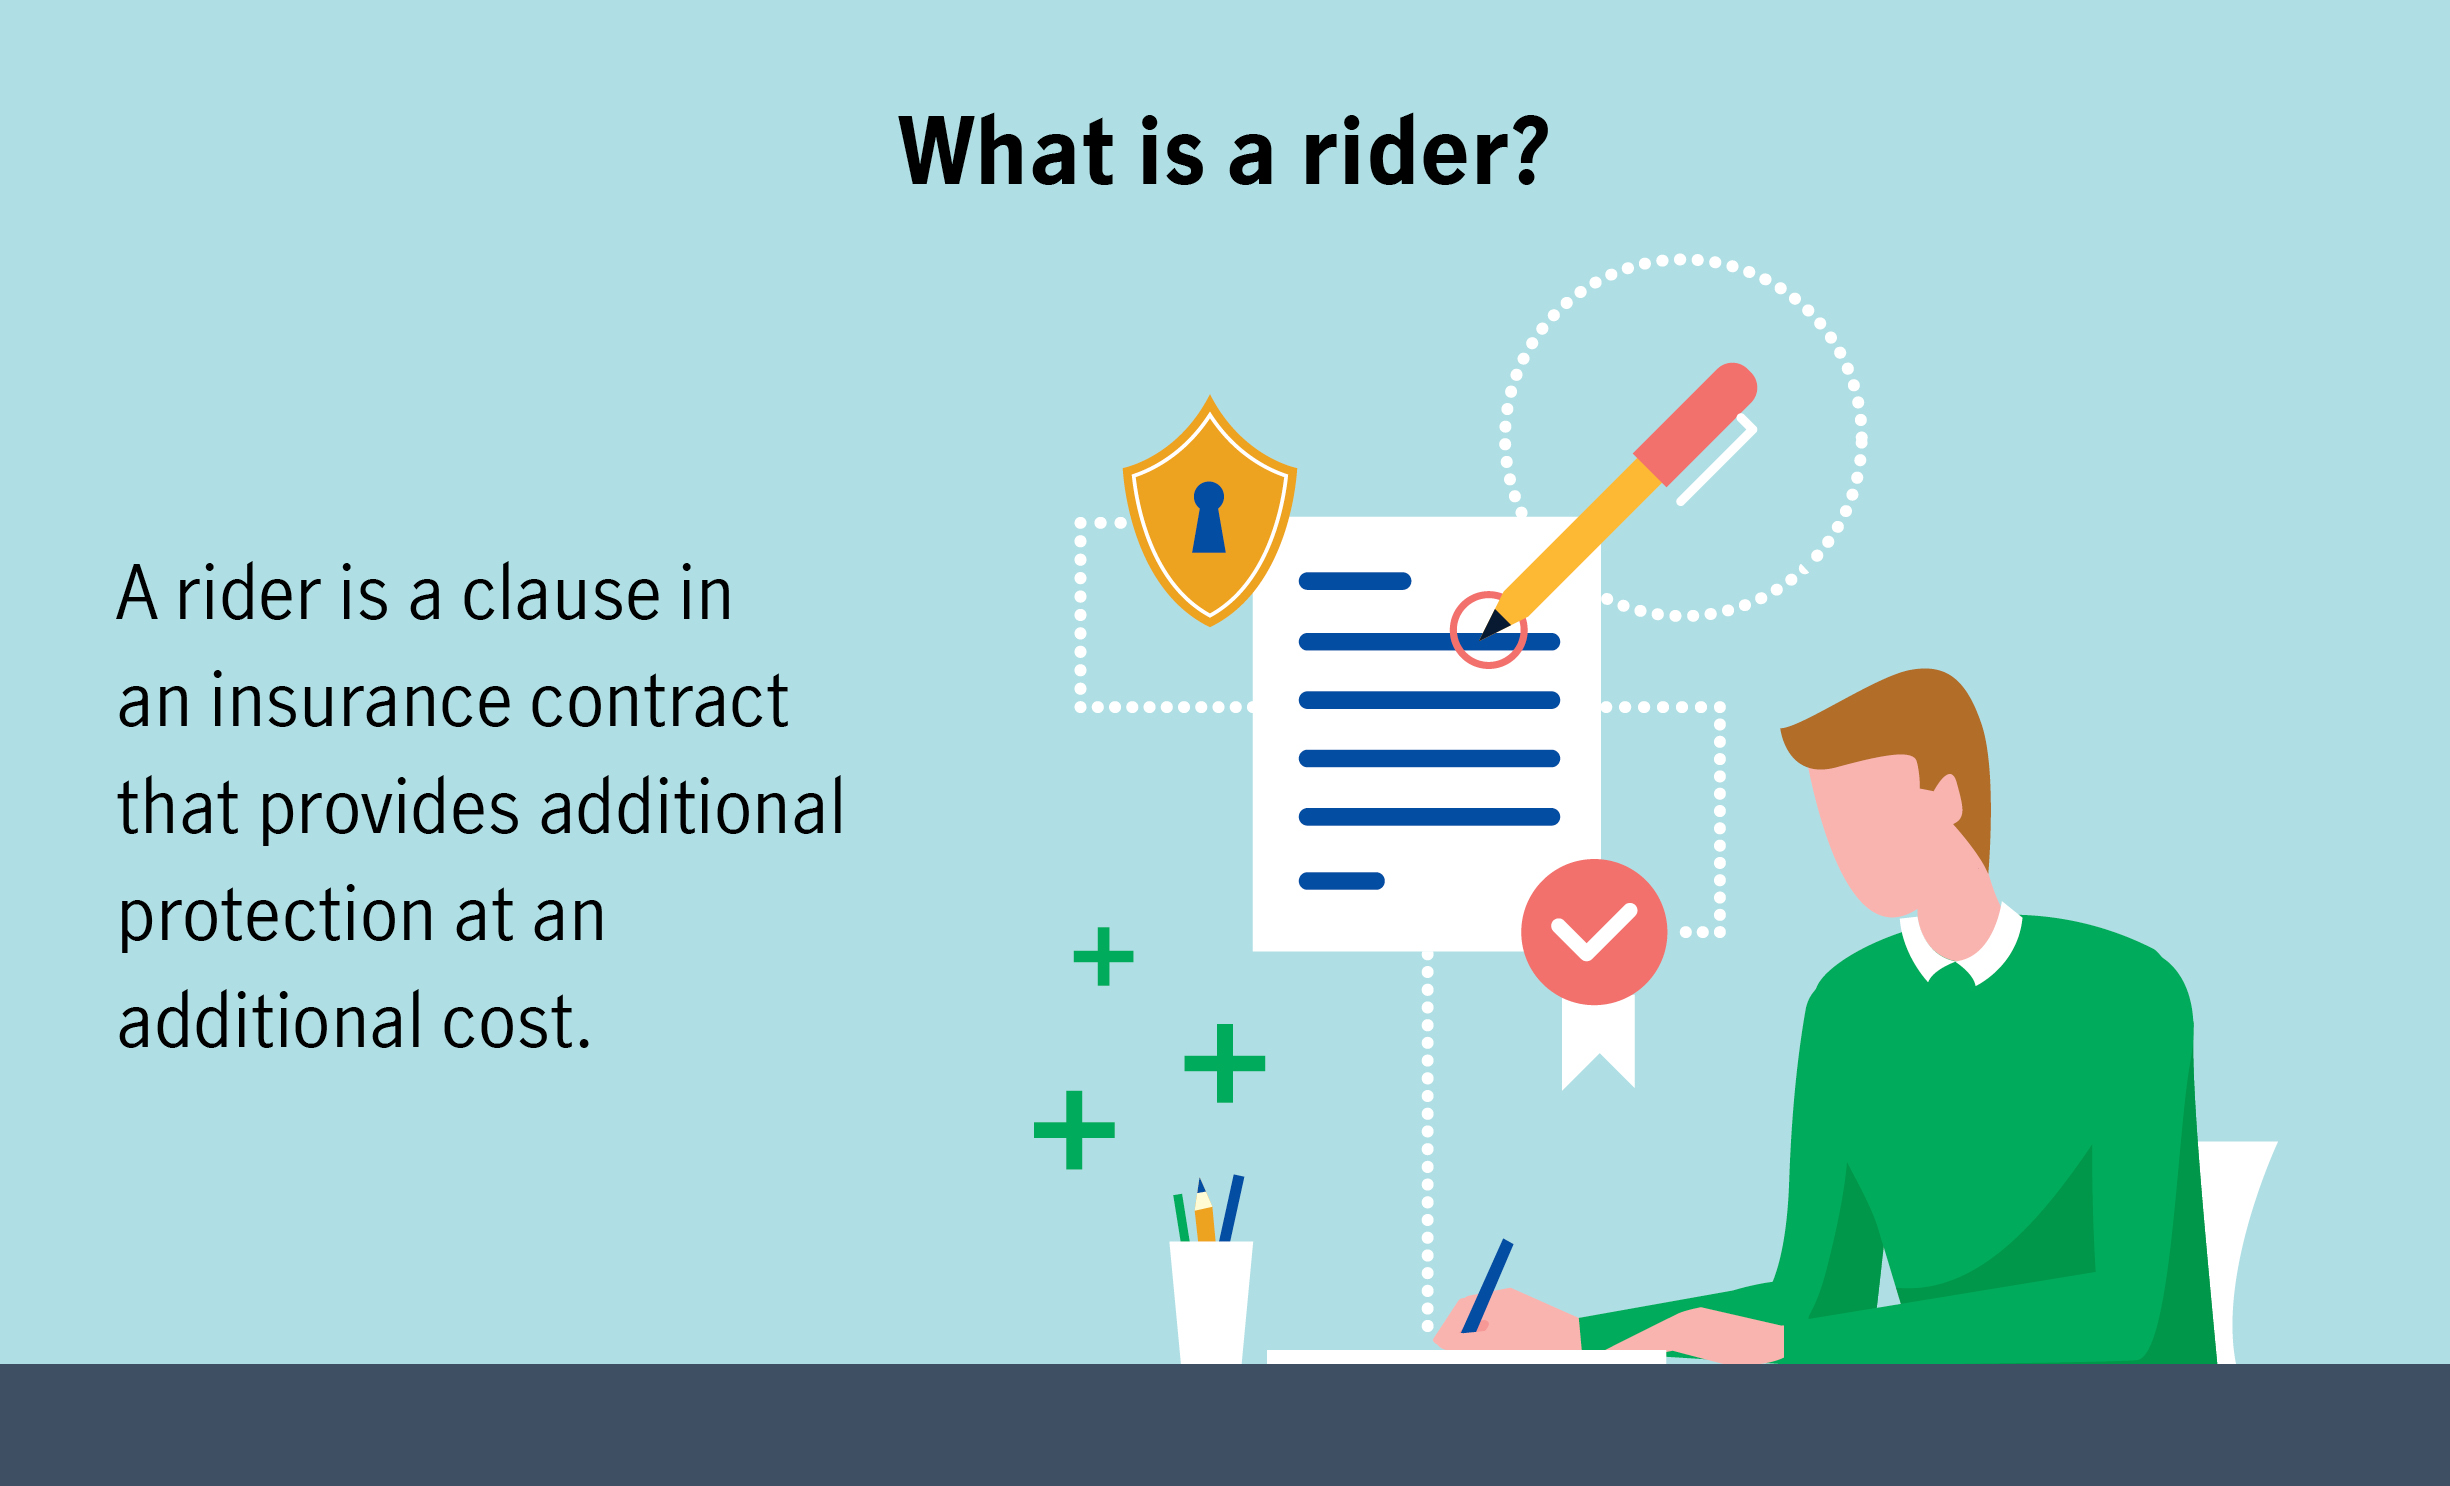 What is a rider?  A rider is a clause in an insurance contract that provides additional protection at an additional cost.